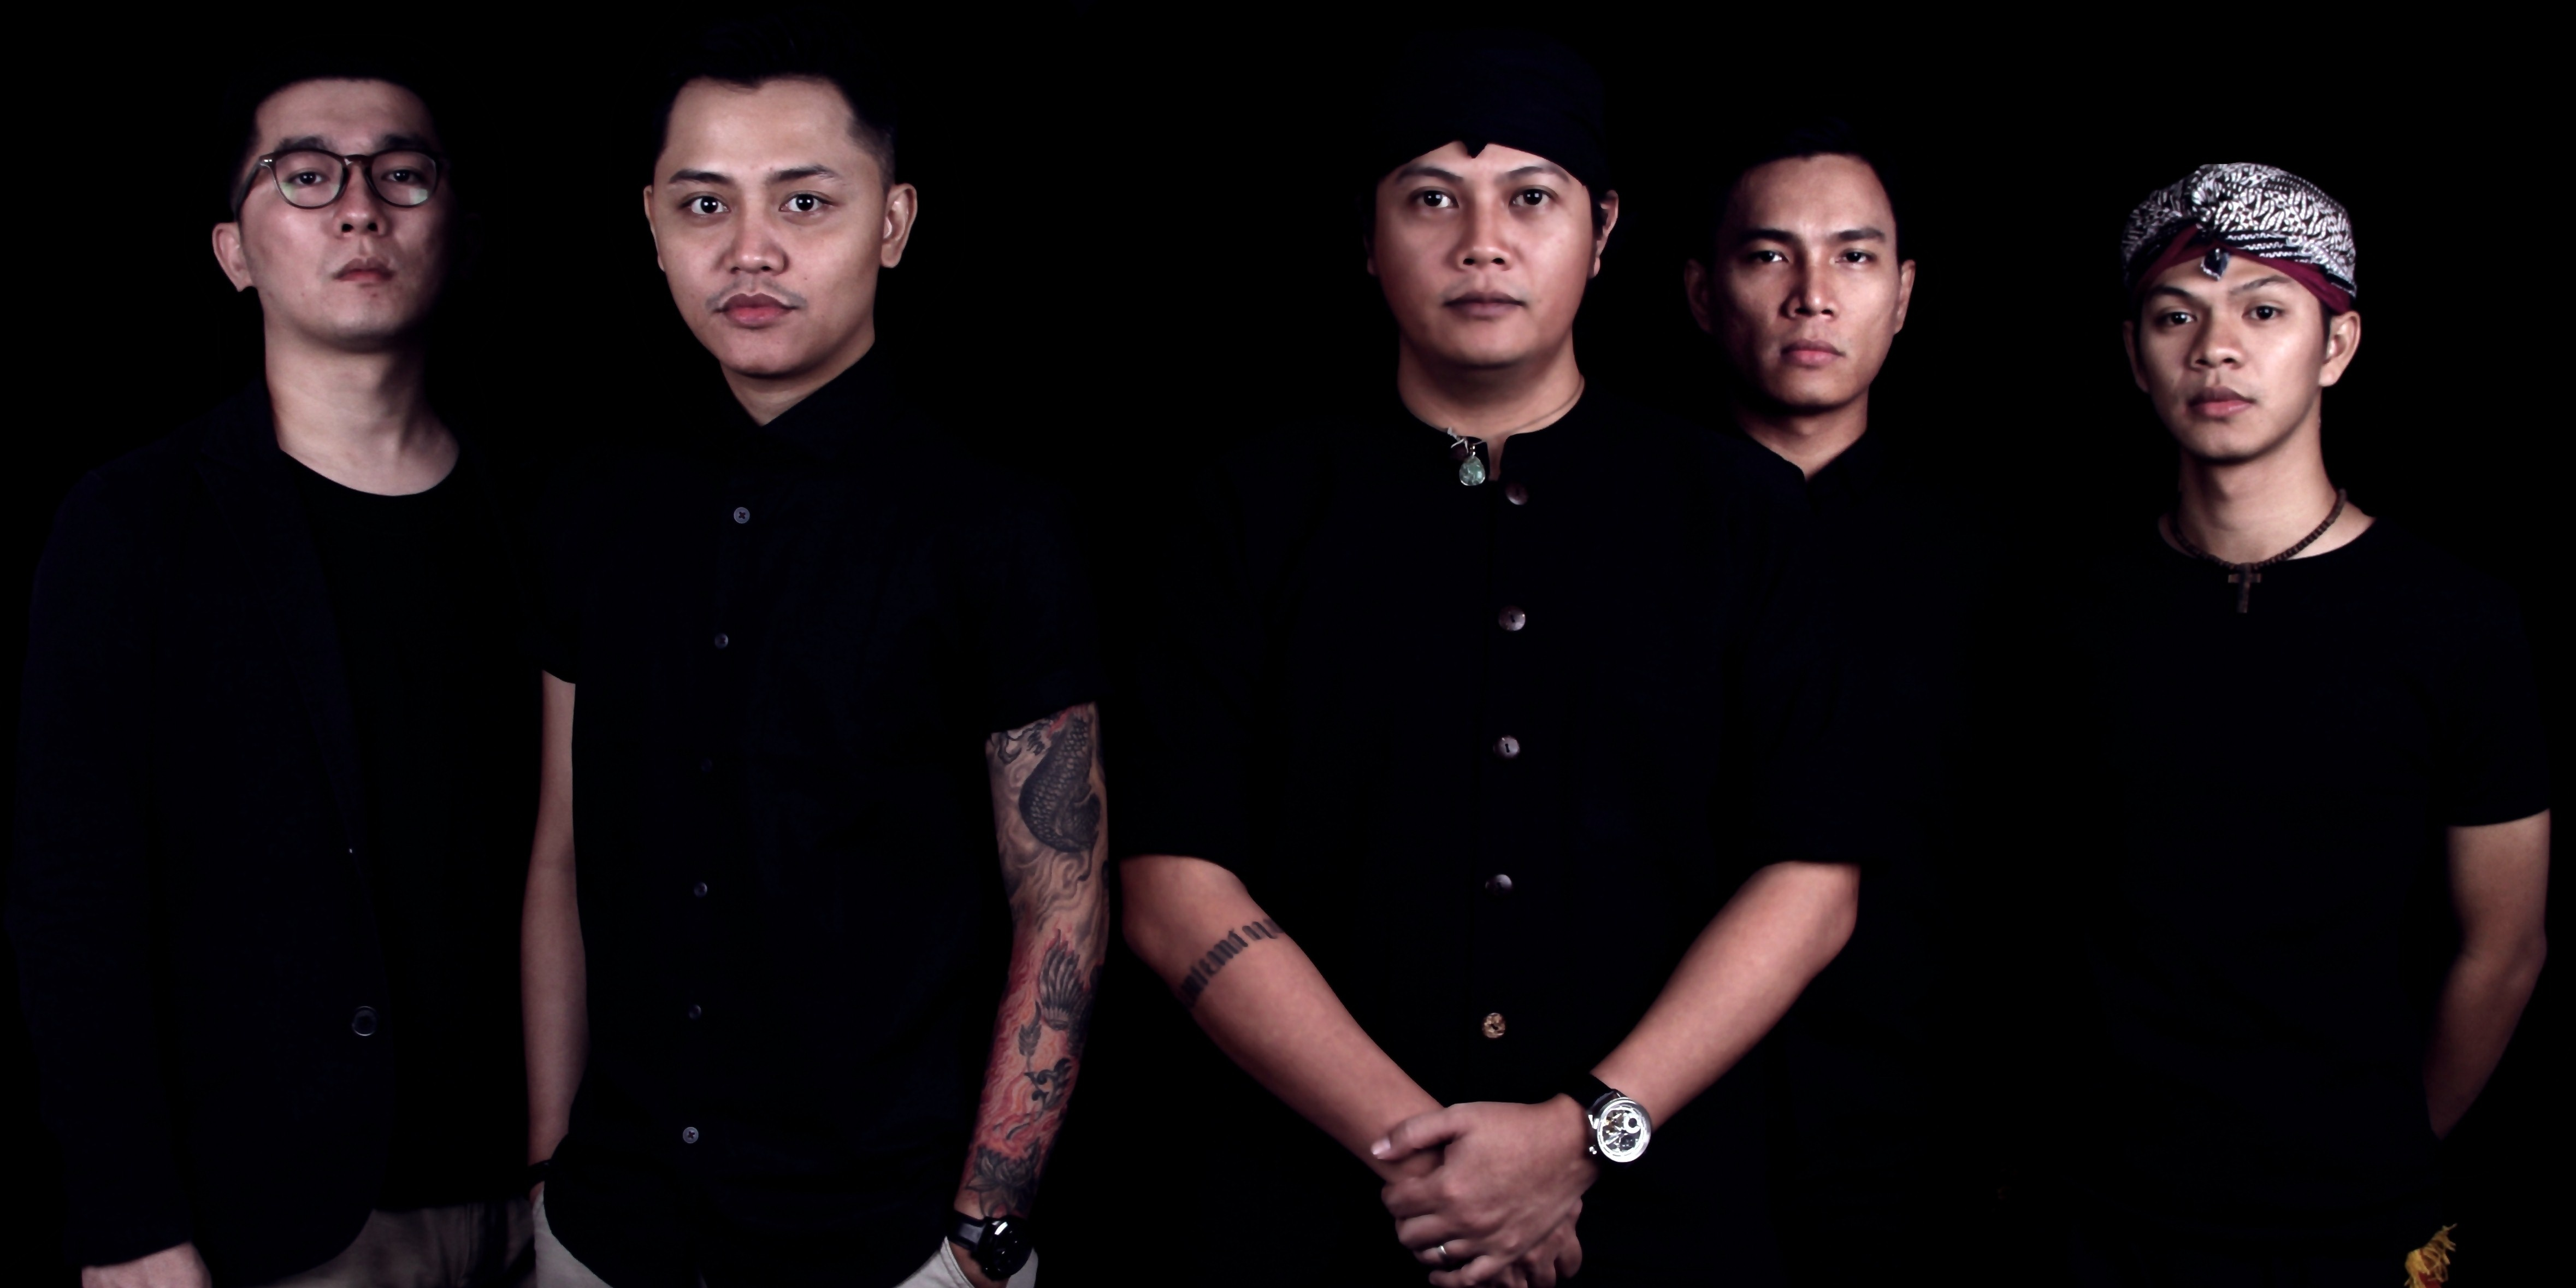 Indonesian folk band Barong Nusantara return with two new singles